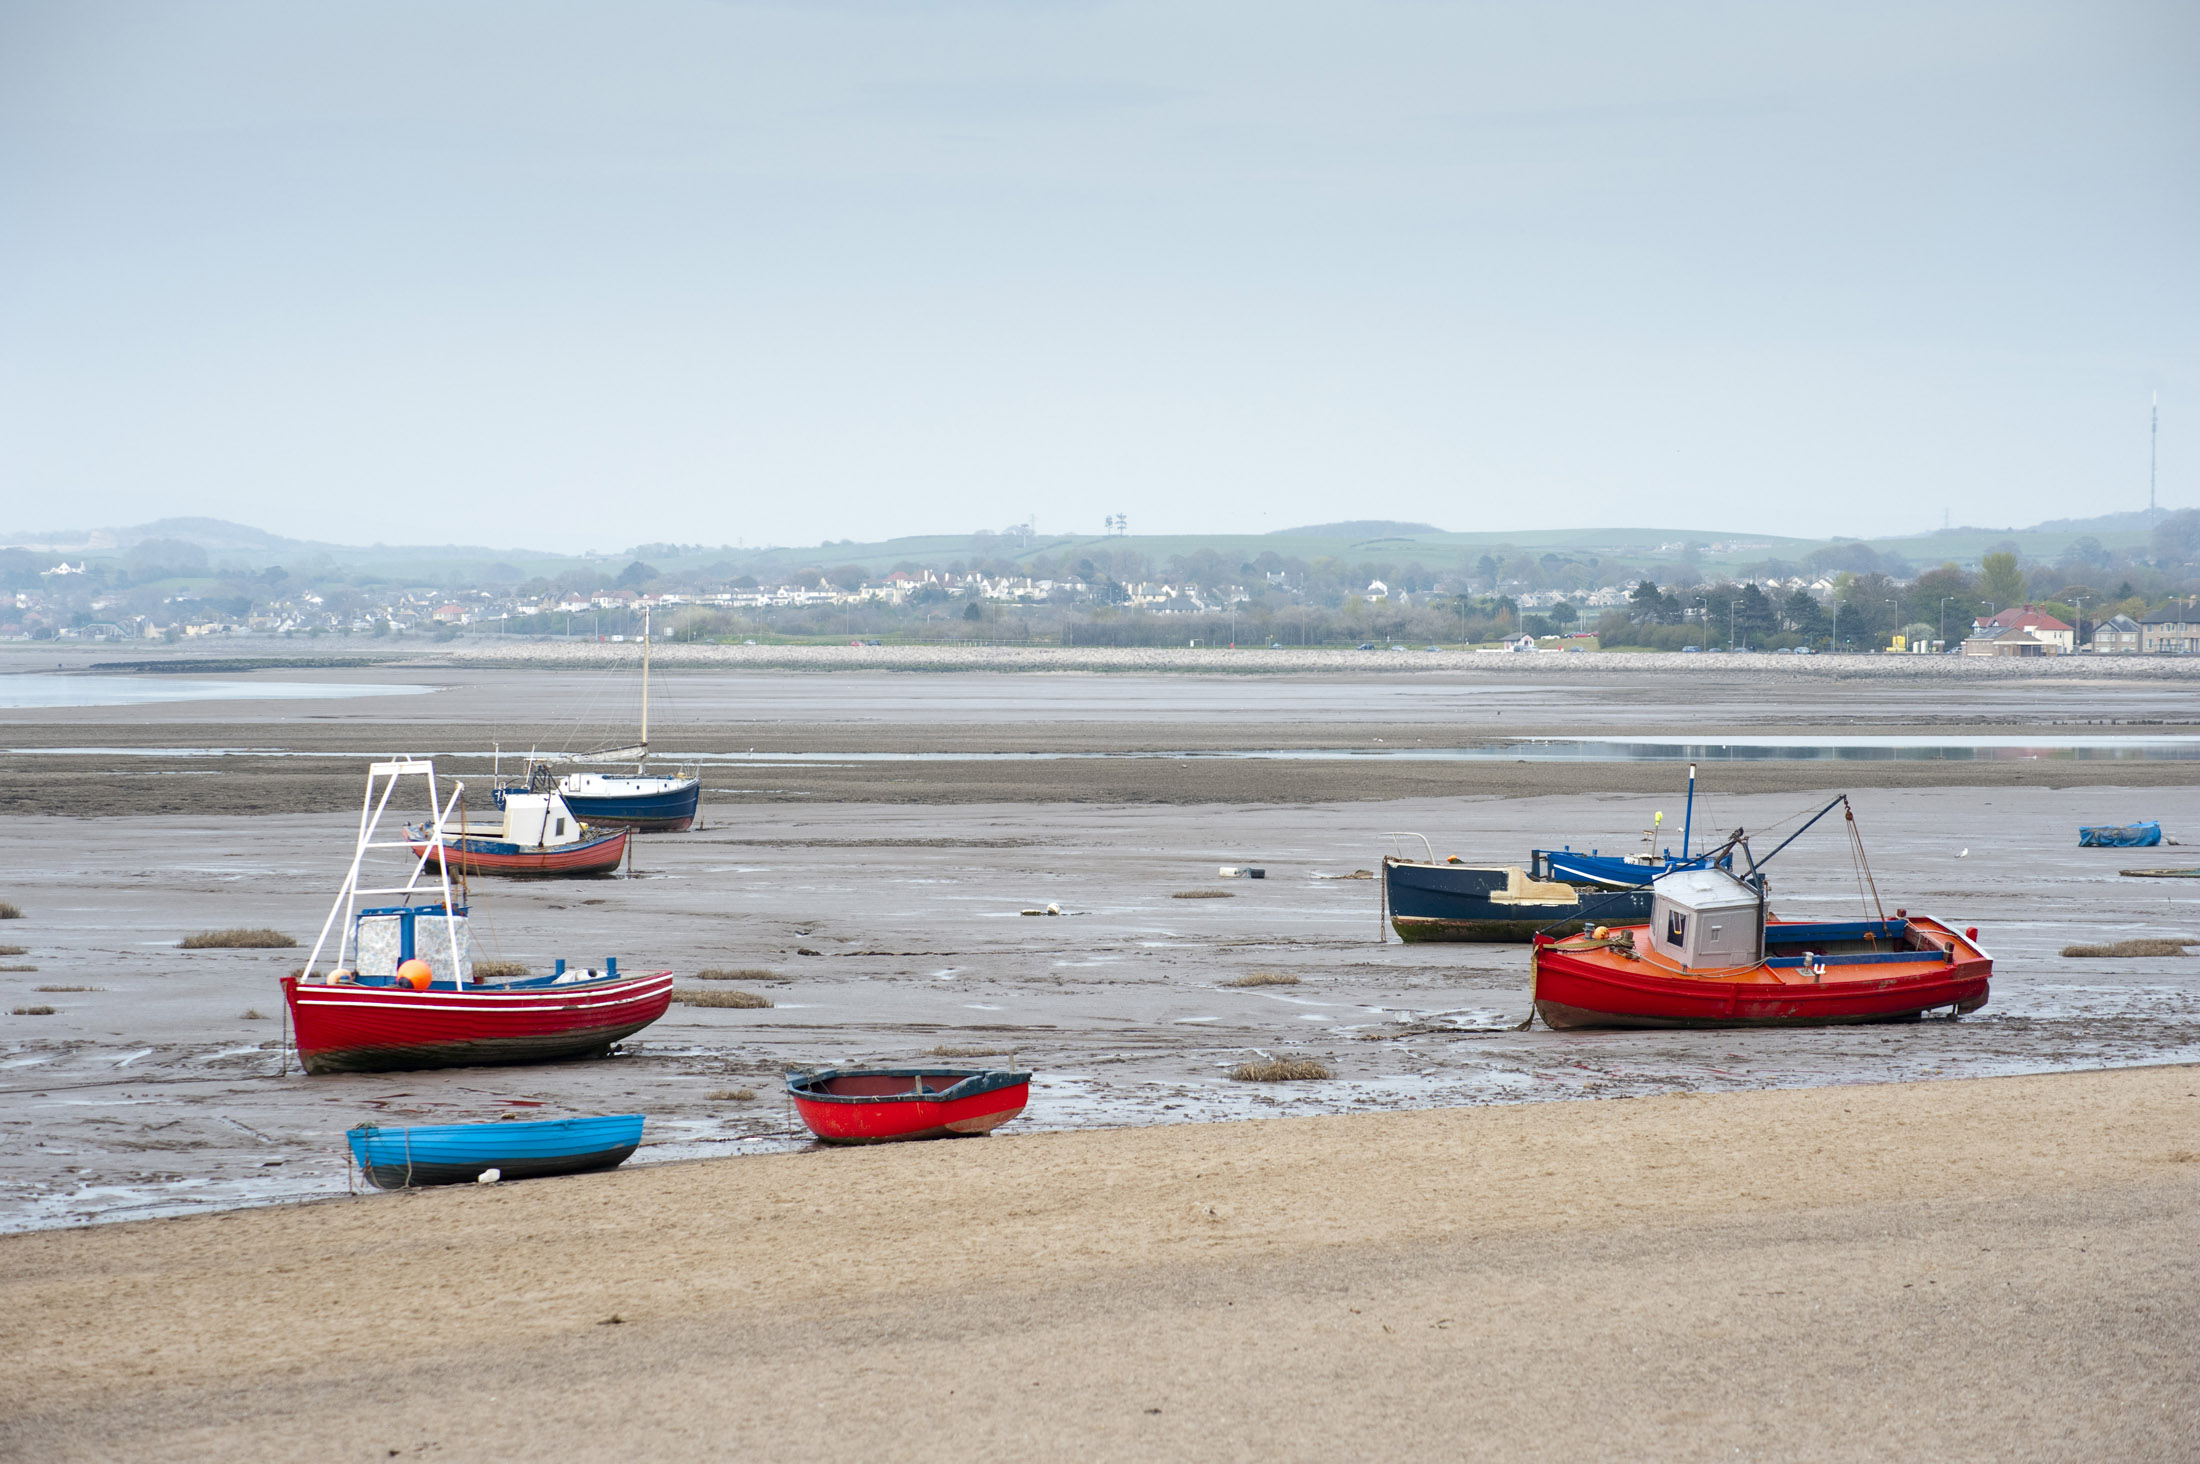 fishing boats at low tide, when the tide goes out in morecambe it goes out a long way, infact the tide has been out since the resorts heyday over 60 years ago